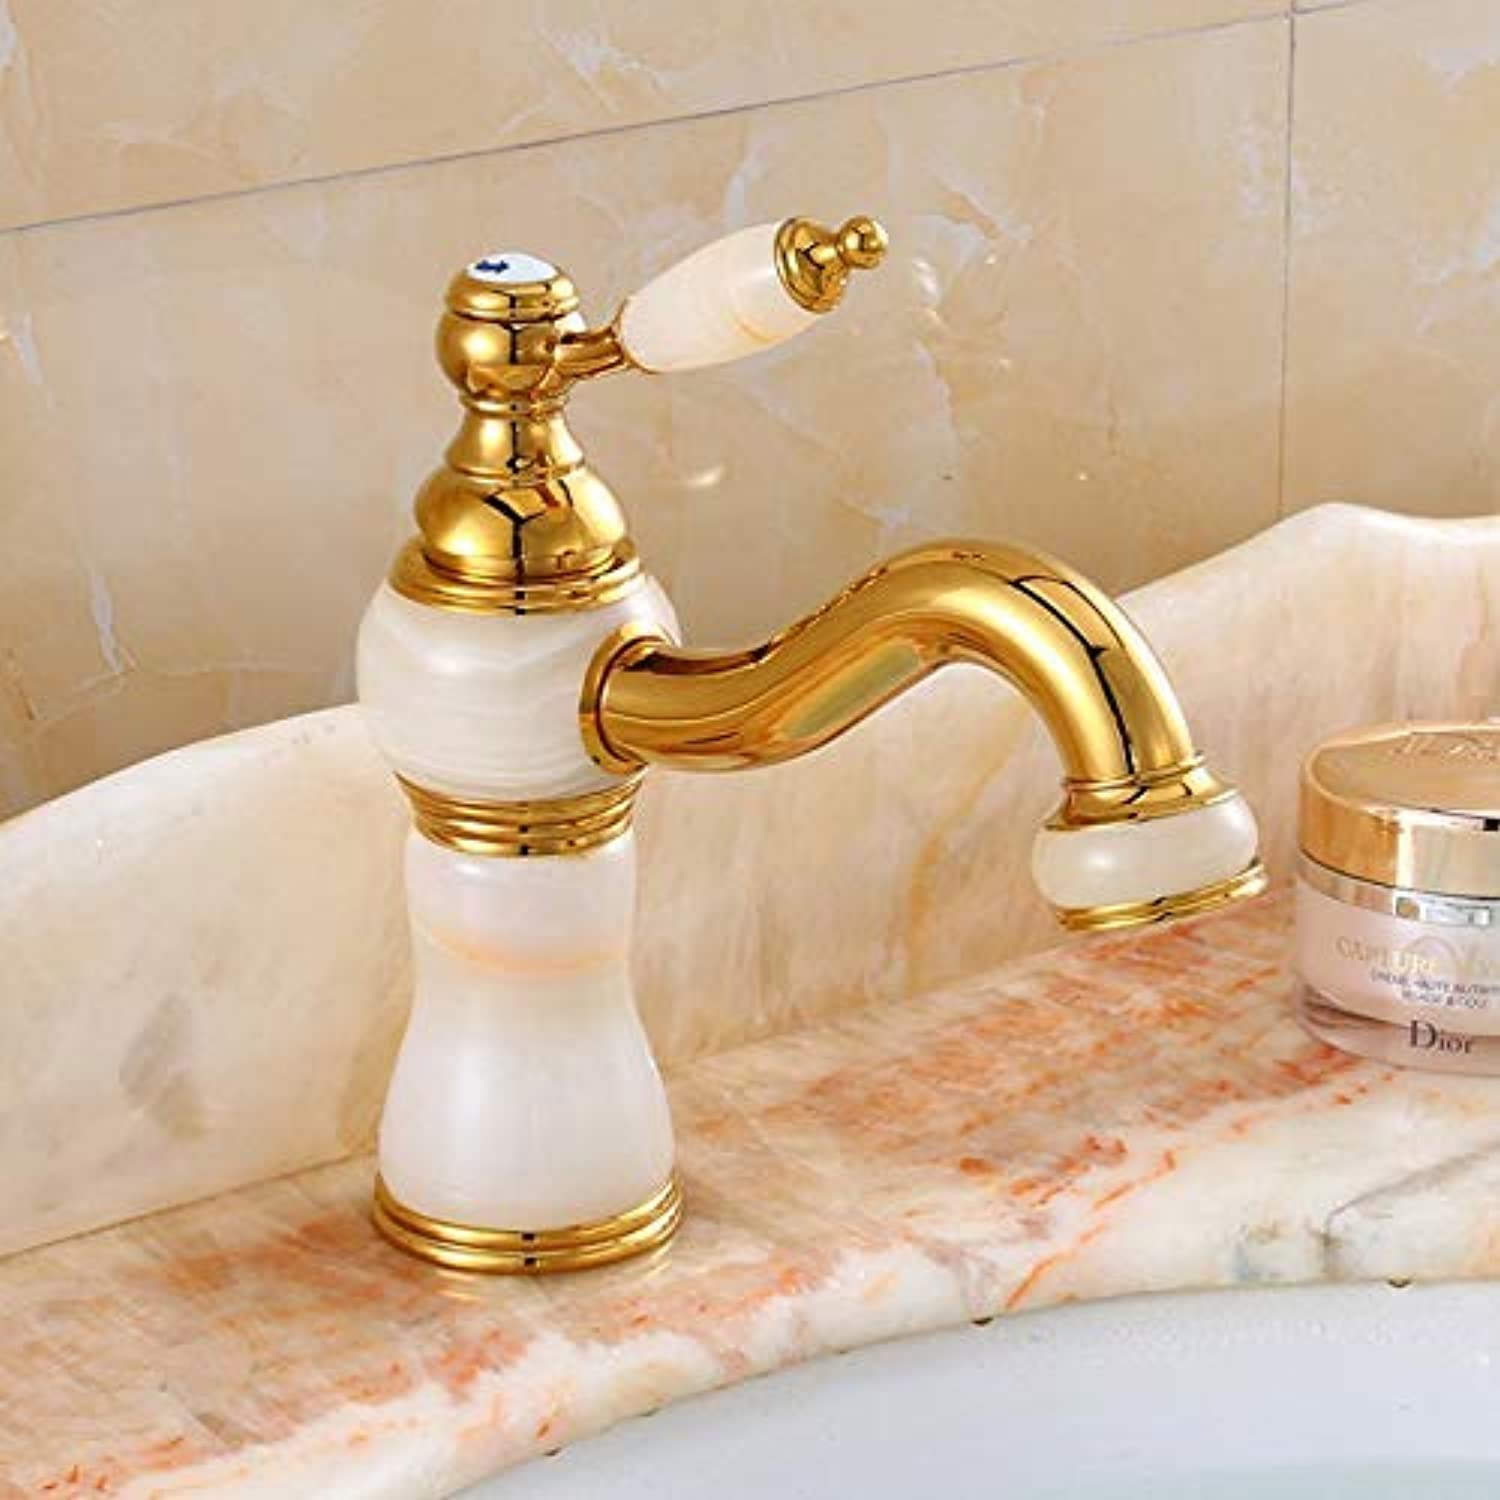 Oudan Taps Basin Hot And Cold Water Faucet Natural Basin Hot And Cold Water Faucet?gold Single Hole Single Handle Basin (color   -, Size   -)